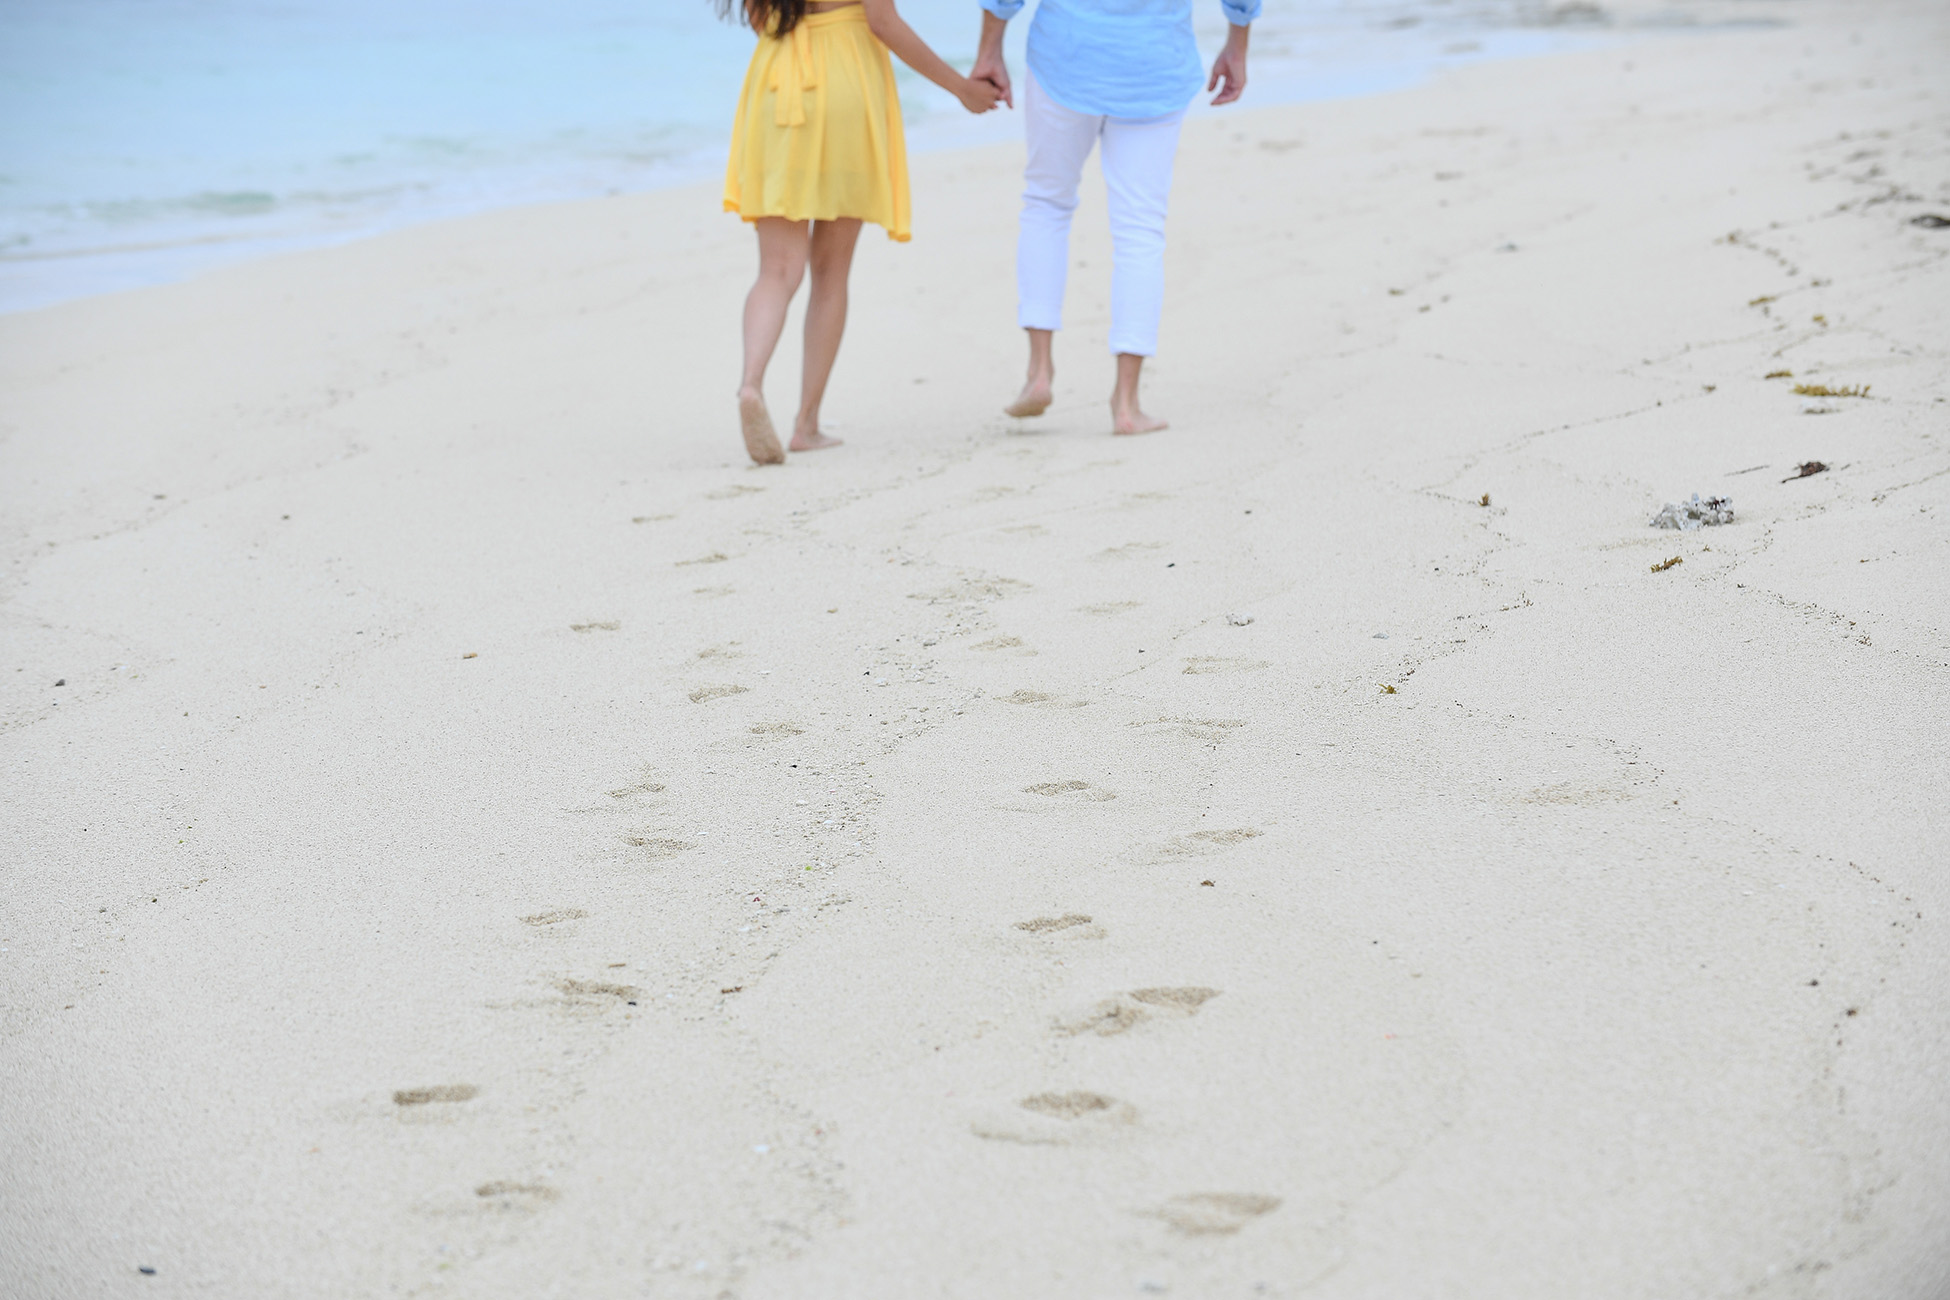 The newly engaged couple leave footprints on the beige Mamanunca beach of Fiji